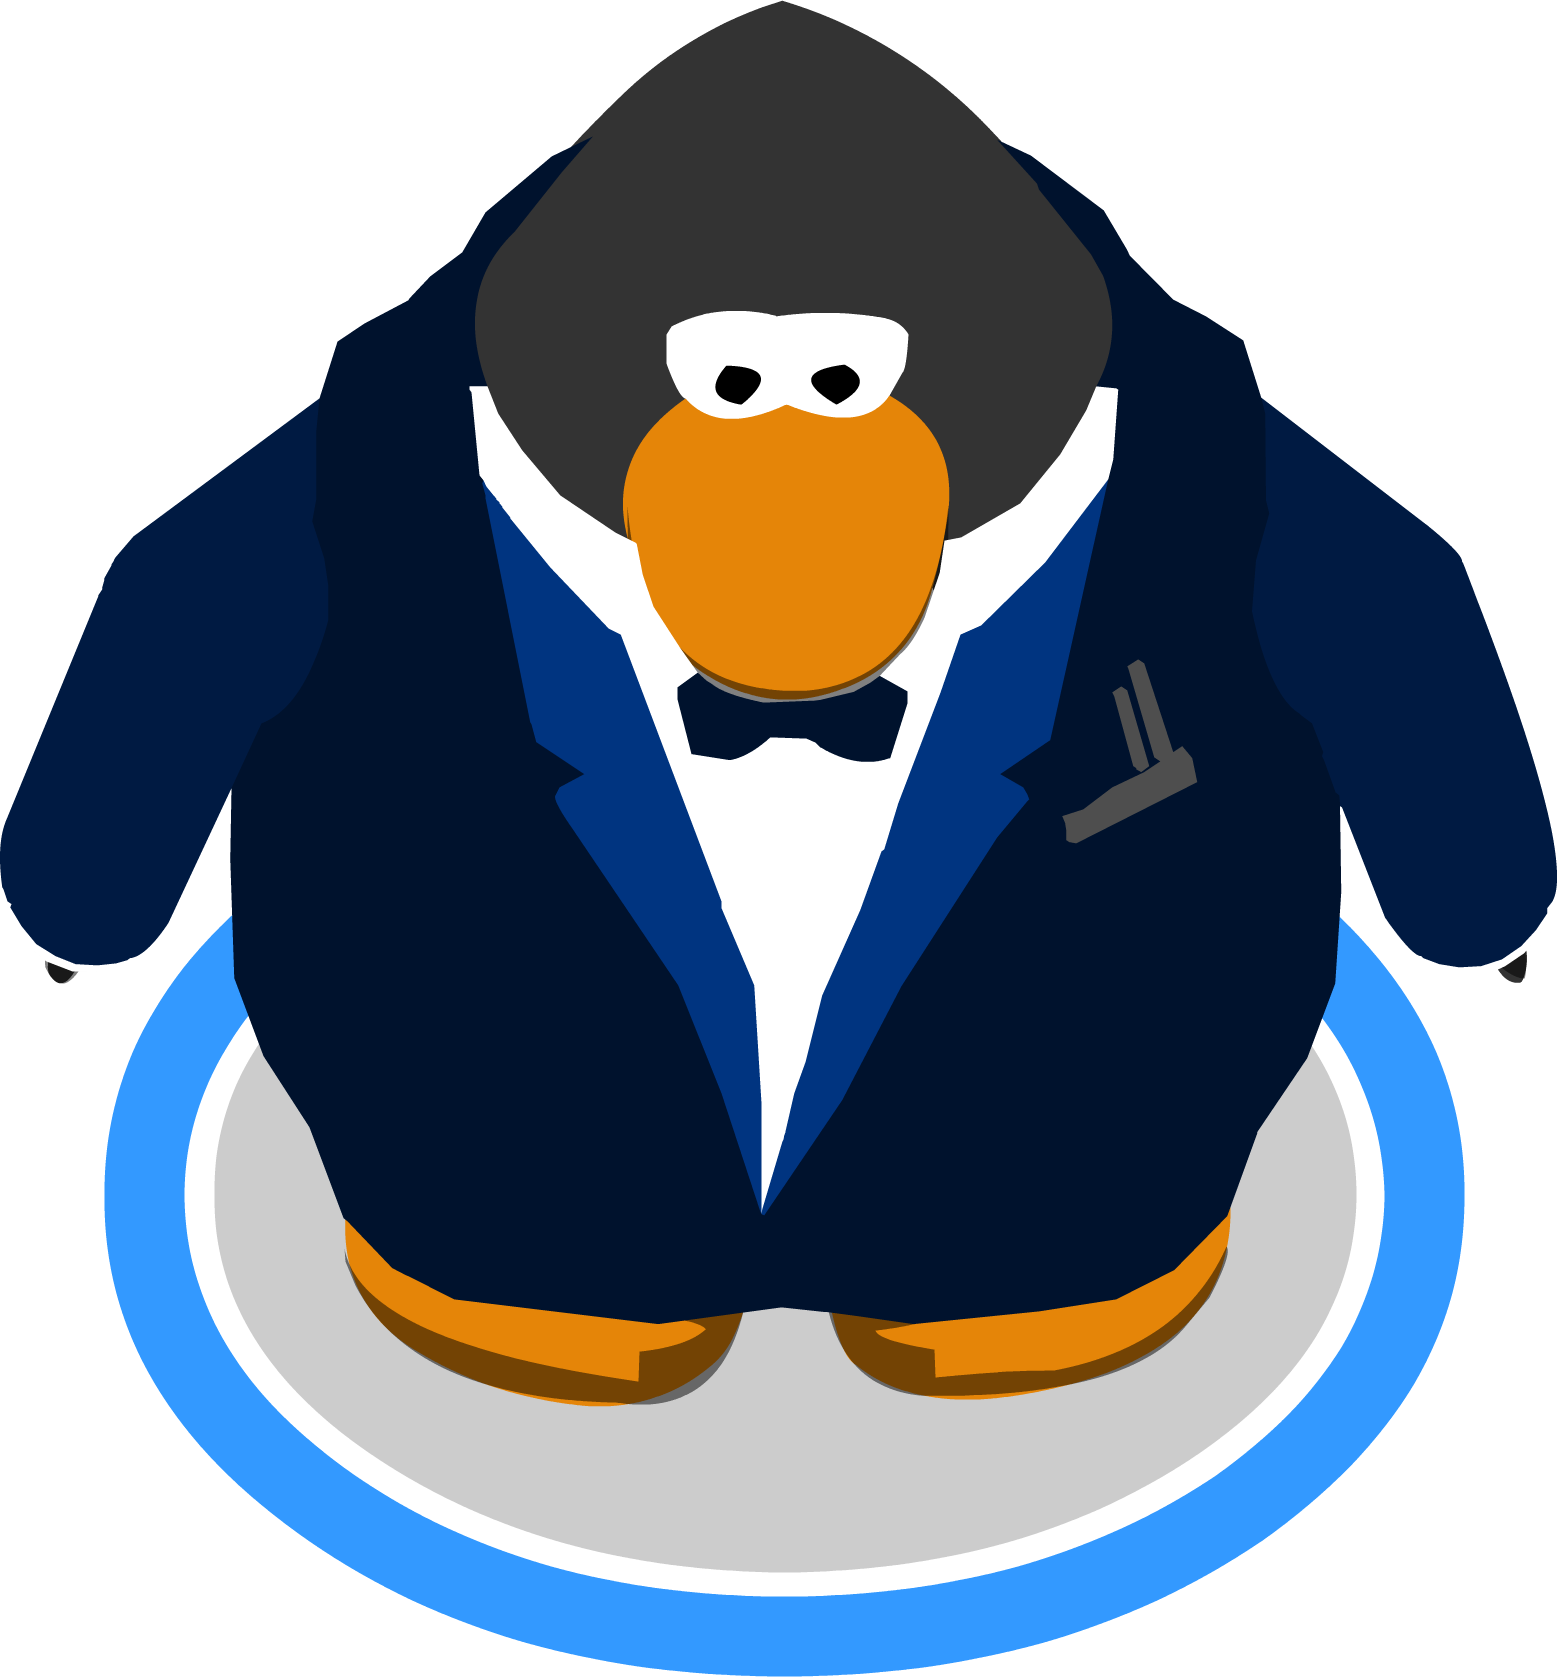 Navy clipart game. Image royale tux in